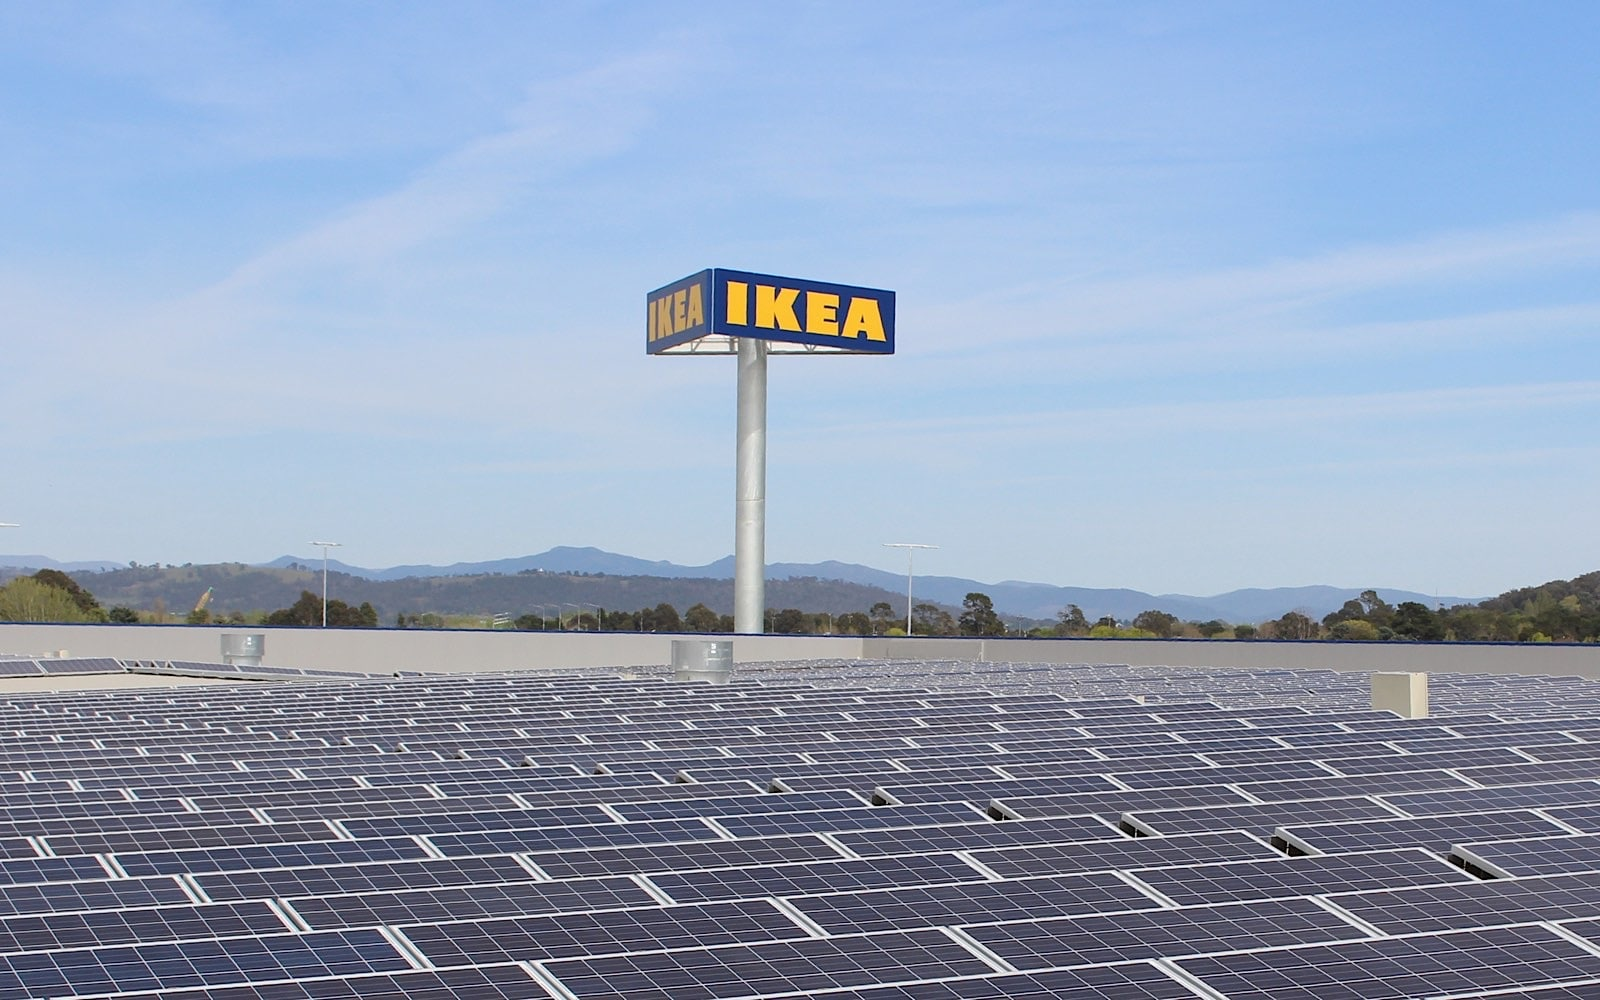 Solar panels at IKEA